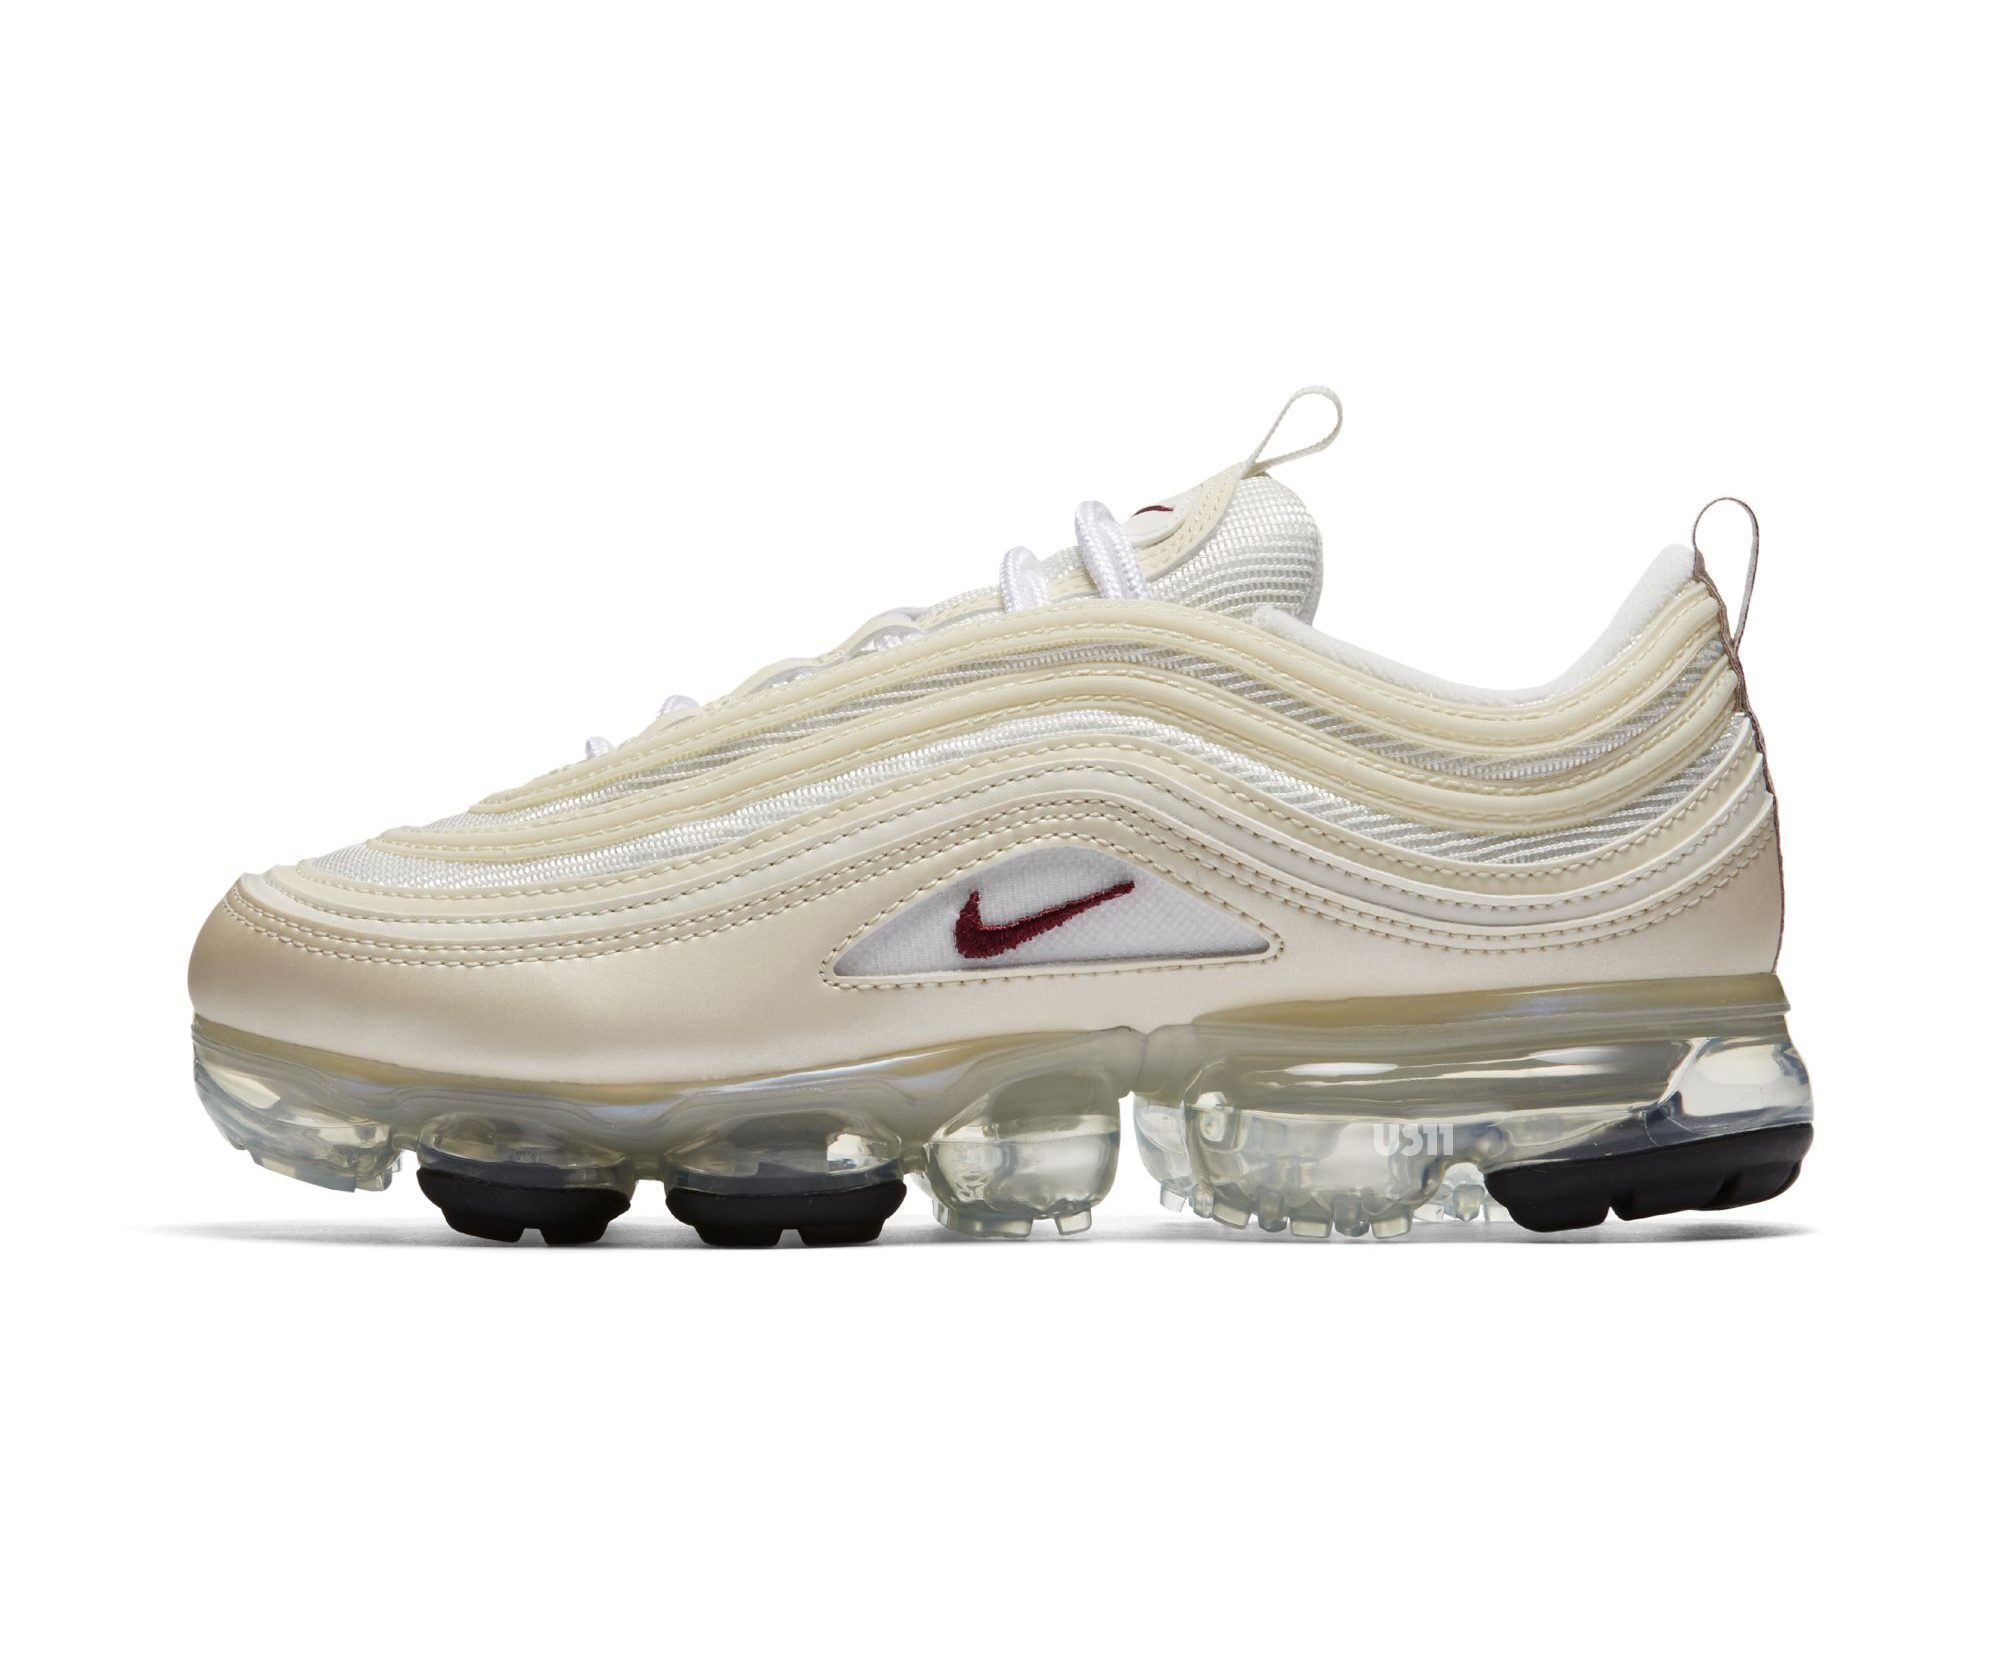 san francisco 51855 88cad Check Out This Nike Air Max 97 VaporMax Hybrid for 2018 ...